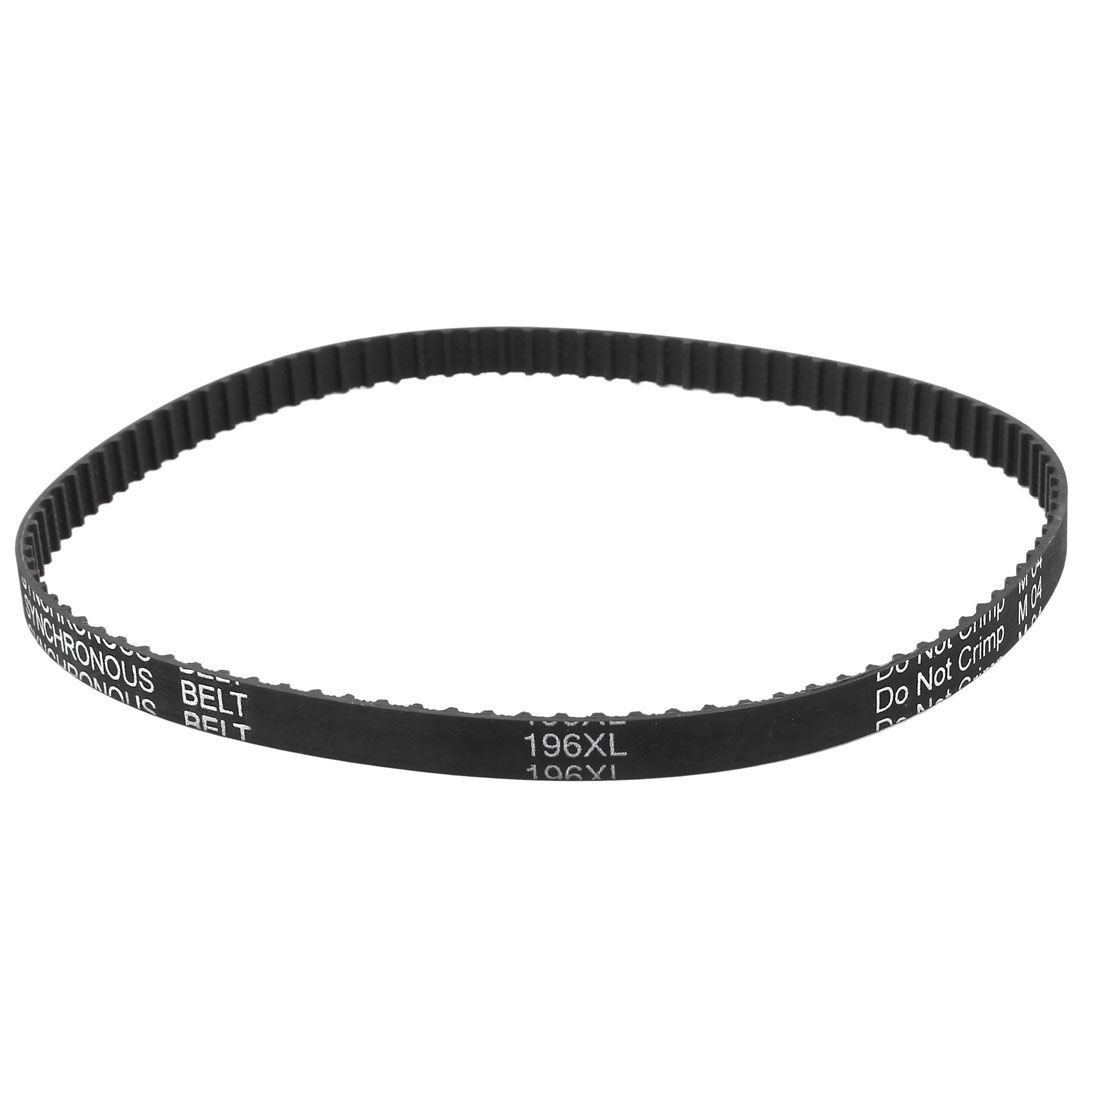 196XL Series 037 9.5mm Wide 98 Teeth 497.84mm Pitch Length Timing Belt Black